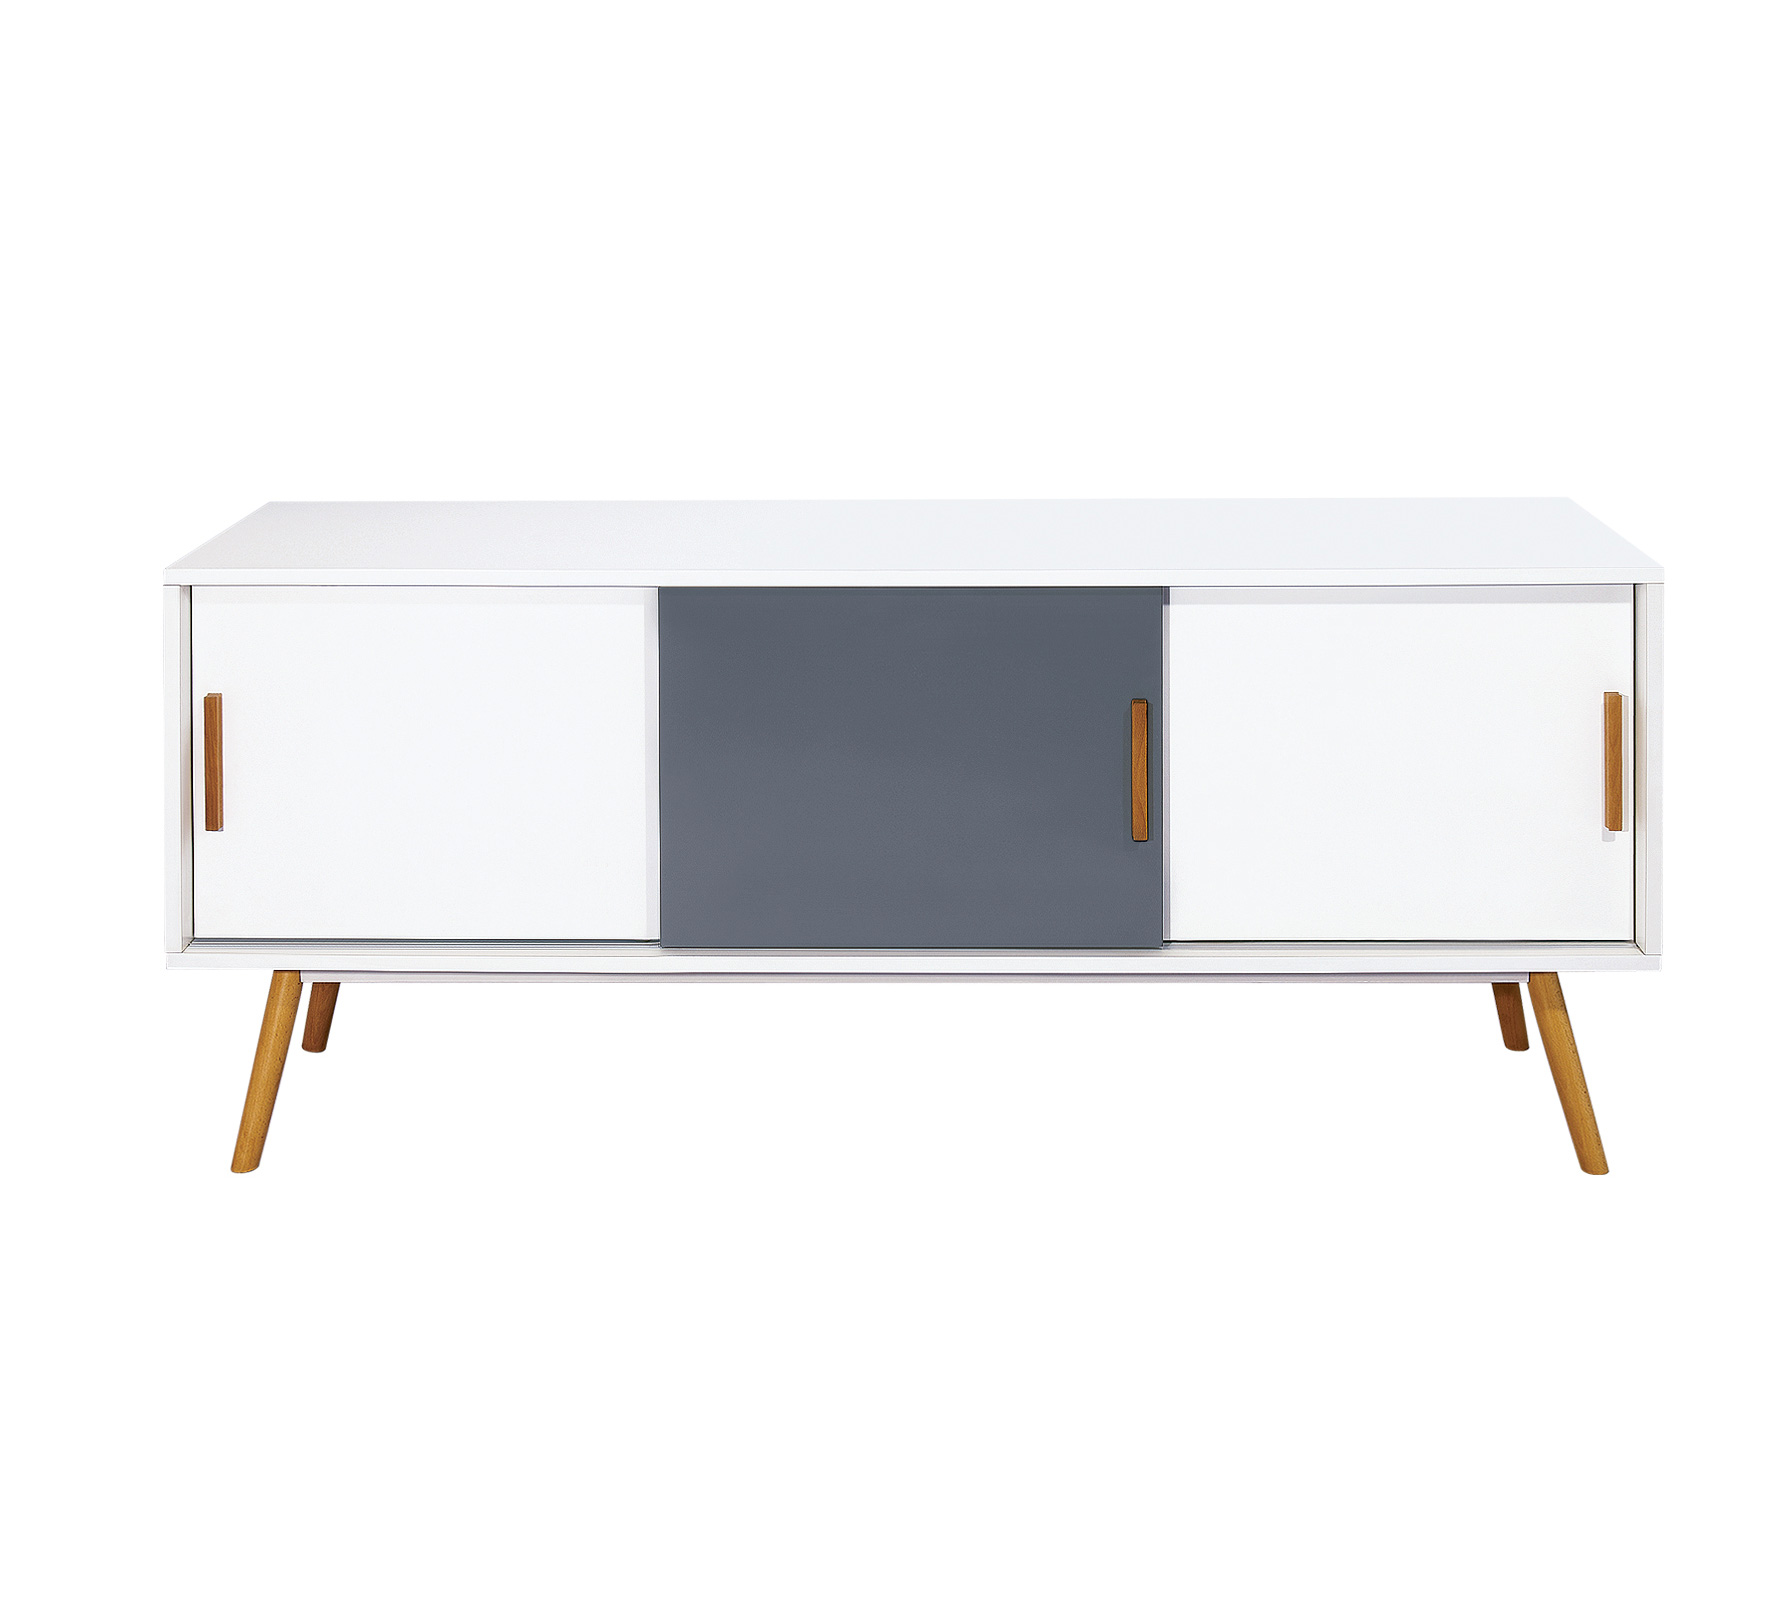 Discounted Furniture Online: Best Furniture Stores Melbourne